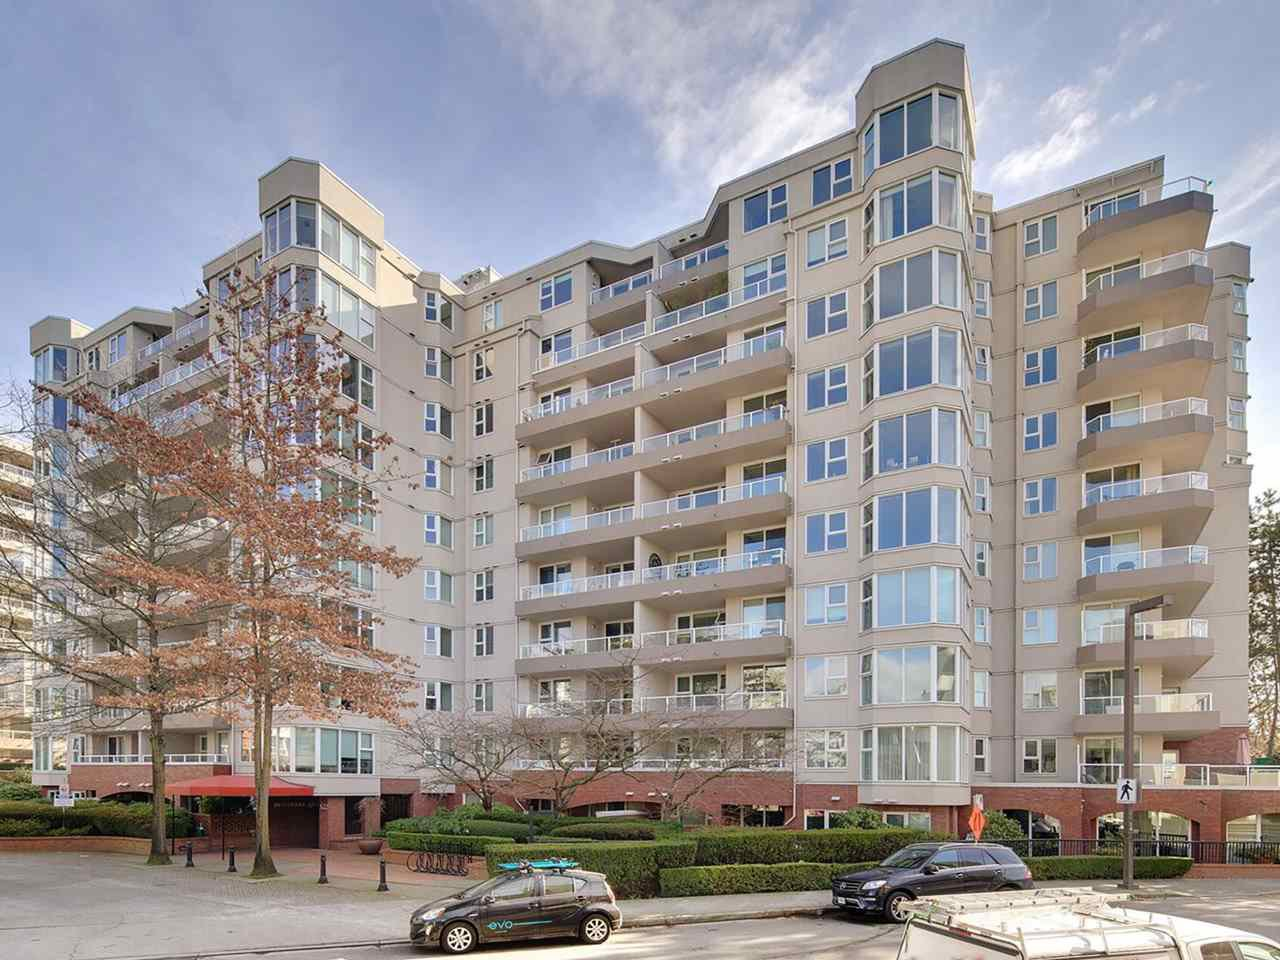 """Main Photo: 310 522 MOBERLY Road in Vancouver: False Creek Condo for sale in """"Discovery Quay"""" (Vancouver West)  : MLS®# R2246450"""